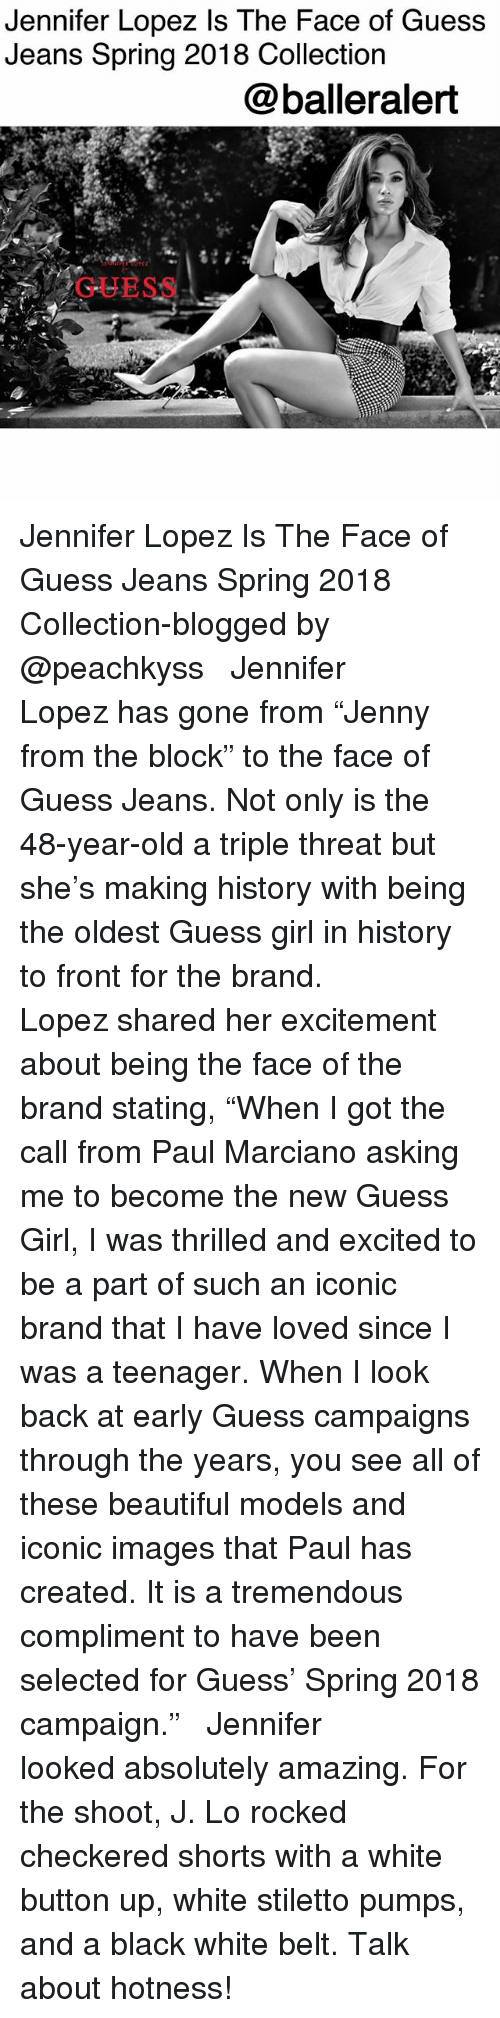 """Jennifer Lopez: Jennifer Lopez Is The Face of Guess  Jeans Spring 2018 Collection  @balleralert  GUESS Jennifer Lopez Is The Face of Guess Jeans Spring 2018 Collection-blogged by @peachkyss ⠀⠀⠀⠀⠀⠀⠀ ⠀⠀⠀⠀⠀⠀⠀ Jennifer Lopez has gone from """"Jenny from the block"""" to the face of Guess Jeans. Not only is the 48-year-old a triple threat but she's making history with being the oldest Guess girl in history to front for the brand. ⠀⠀⠀⠀⠀⠀⠀ ⠀⠀⠀⠀⠀⠀⠀ Lopez shared her excitement about being the face of the brand stating, """"When I got the call from Paul Marciano asking me to become the new Guess Girl, I was thrilled and excited to be a part of such an iconic brand that I have loved since I was a teenager. When I look back at early Guess campaigns through the years, you see all of these beautiful models and iconic images that Paul has created. It is a tremendous compliment to have been selected for Guess' Spring 2018 campaign."""" ⠀⠀⠀⠀⠀⠀⠀ ⠀⠀⠀⠀⠀⠀⠀ Jennifer looked absolutely amazing. For the shoot, J. Lo rocked checkered shorts with a white button up, white stiletto pumps, and a black white belt. Talk about hotness!"""